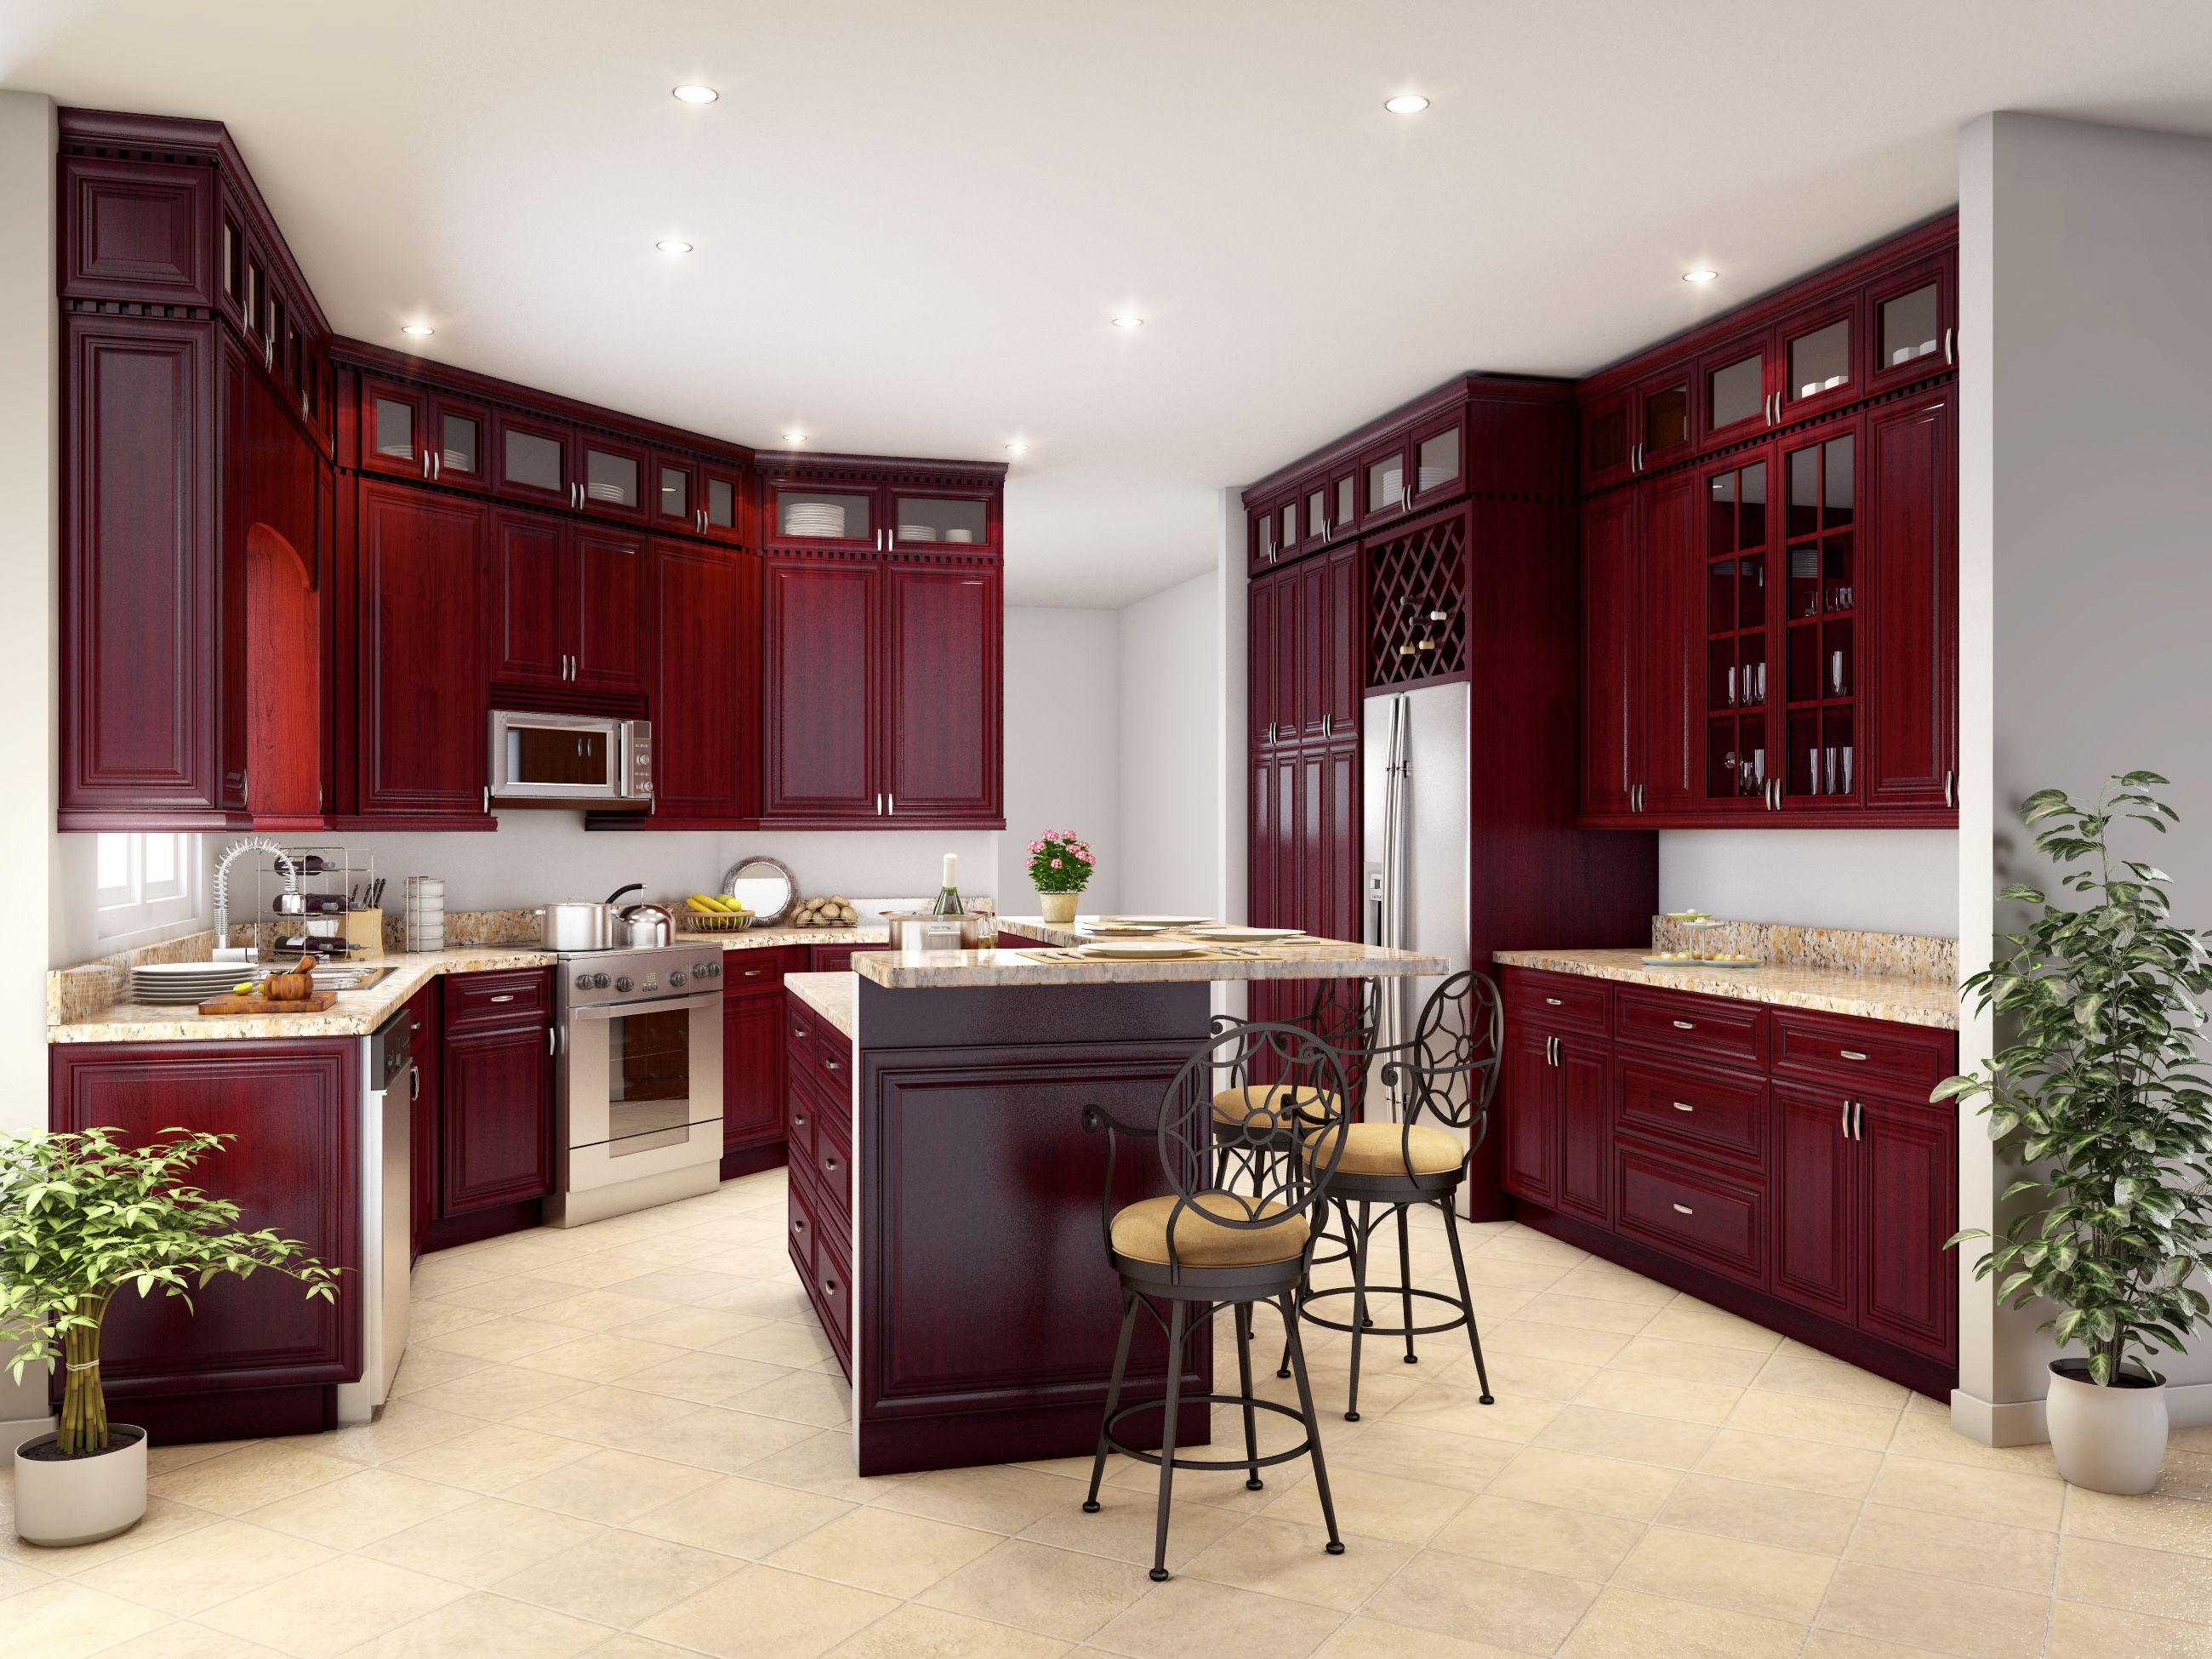 Alder species cherry color mitered raised panel full overlay style 3/4'' thick - five piece raised panel doors